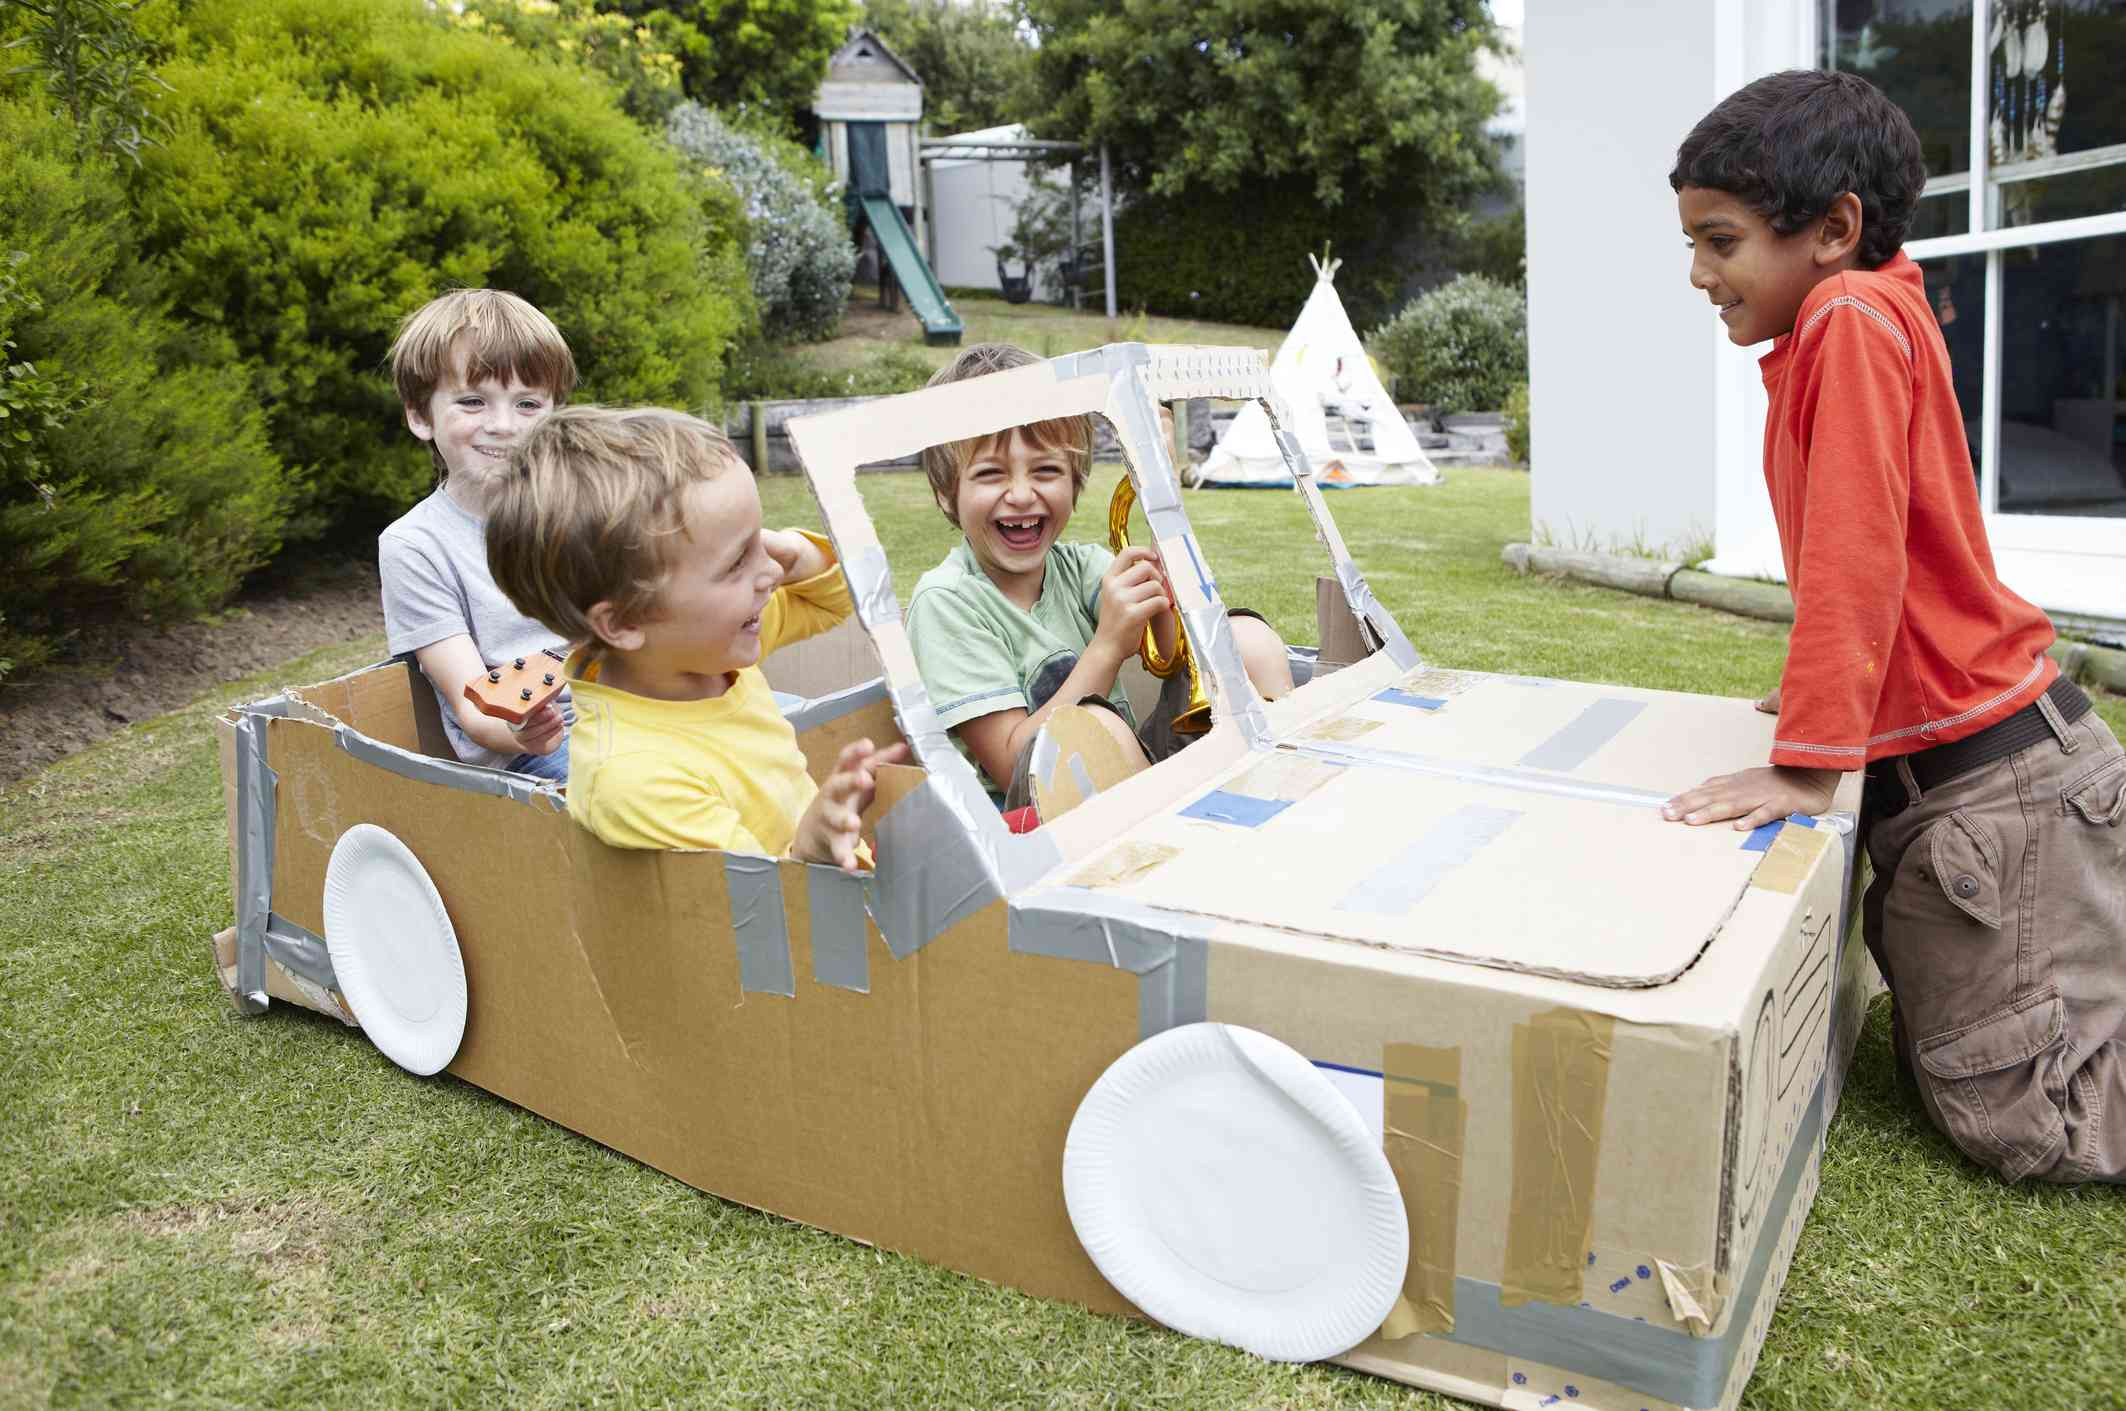 Group of boys playing in cardboard car